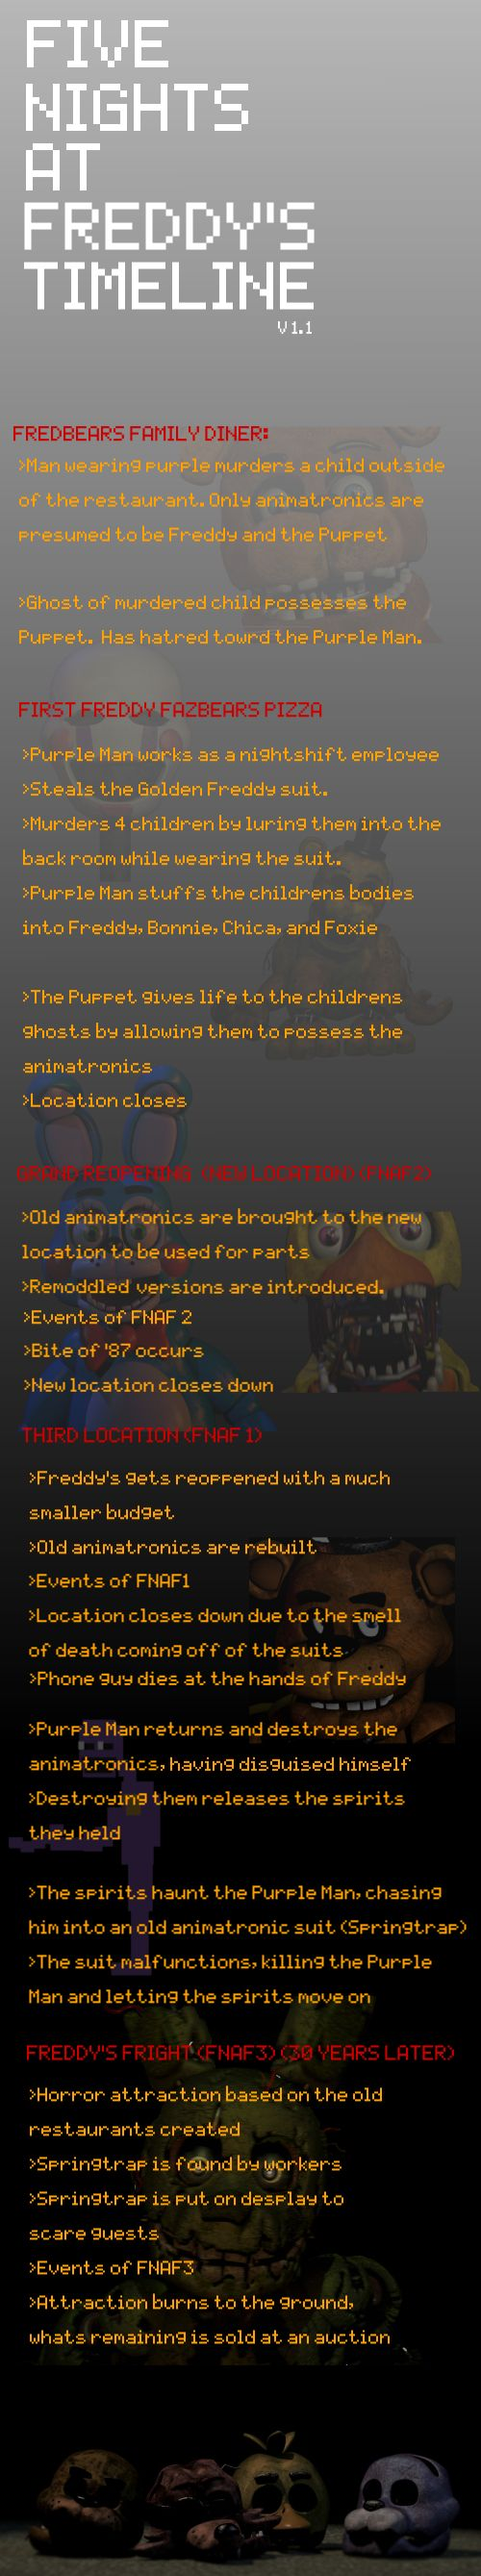 Five Nights at Freddy's Timeline, this all makes sense, its obvious that their were 4 restaurants. Five nights at freddys was i have to admit, had an amazing storyline, it's actually kinda heartwarming, despite it being absolutely terrifying.